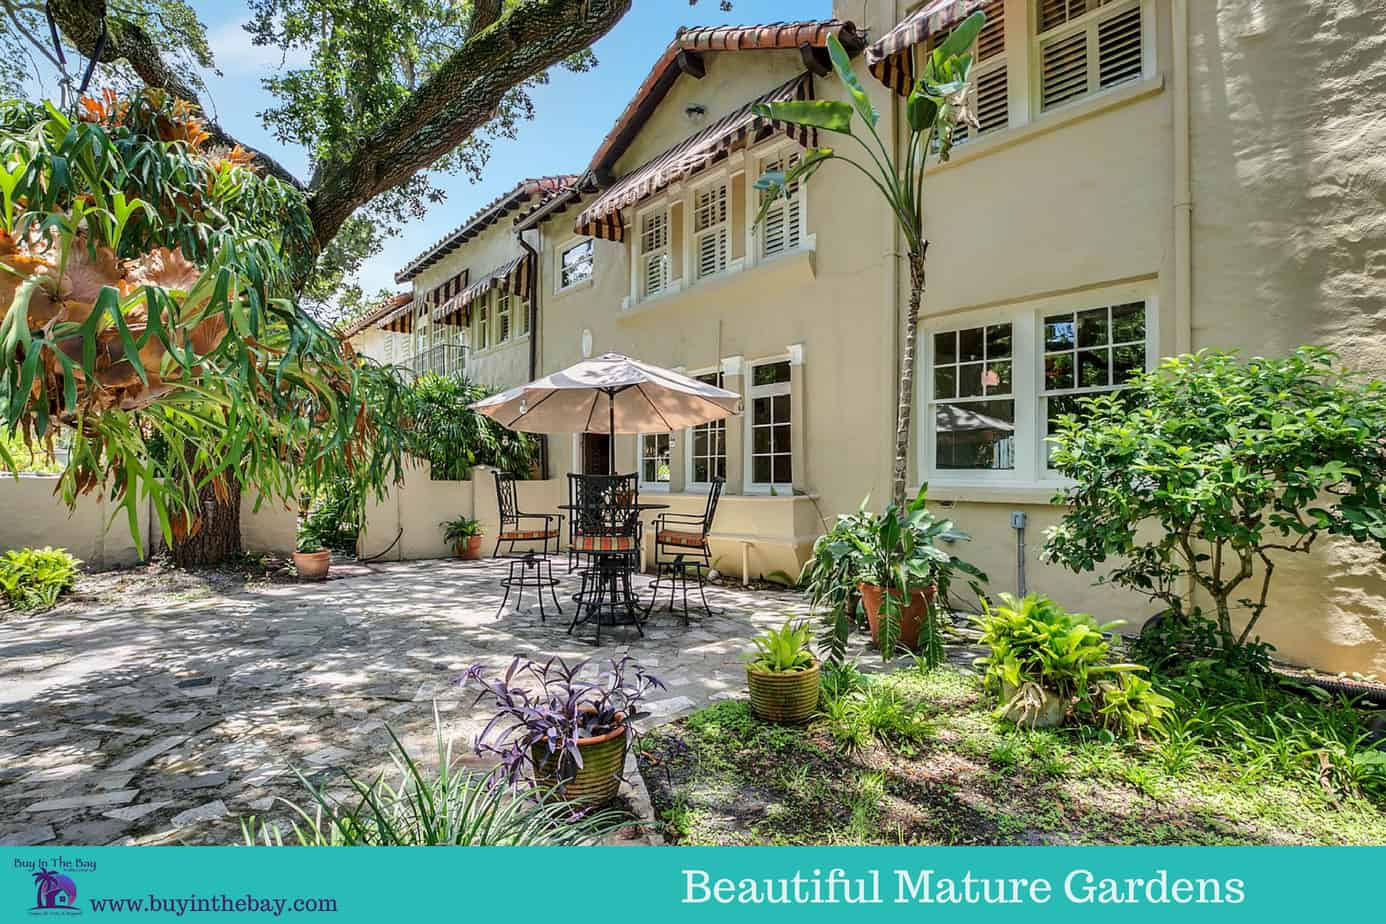 Image of Side of Home and Beautiful Mature Gardens and a table with chairs at the home at 4024 W Bay To Bay Blvd, Tampa FL 33629. A perfect Example of a Historic Homes in Florida and a Tampa Bay Luxury Homes For sale.